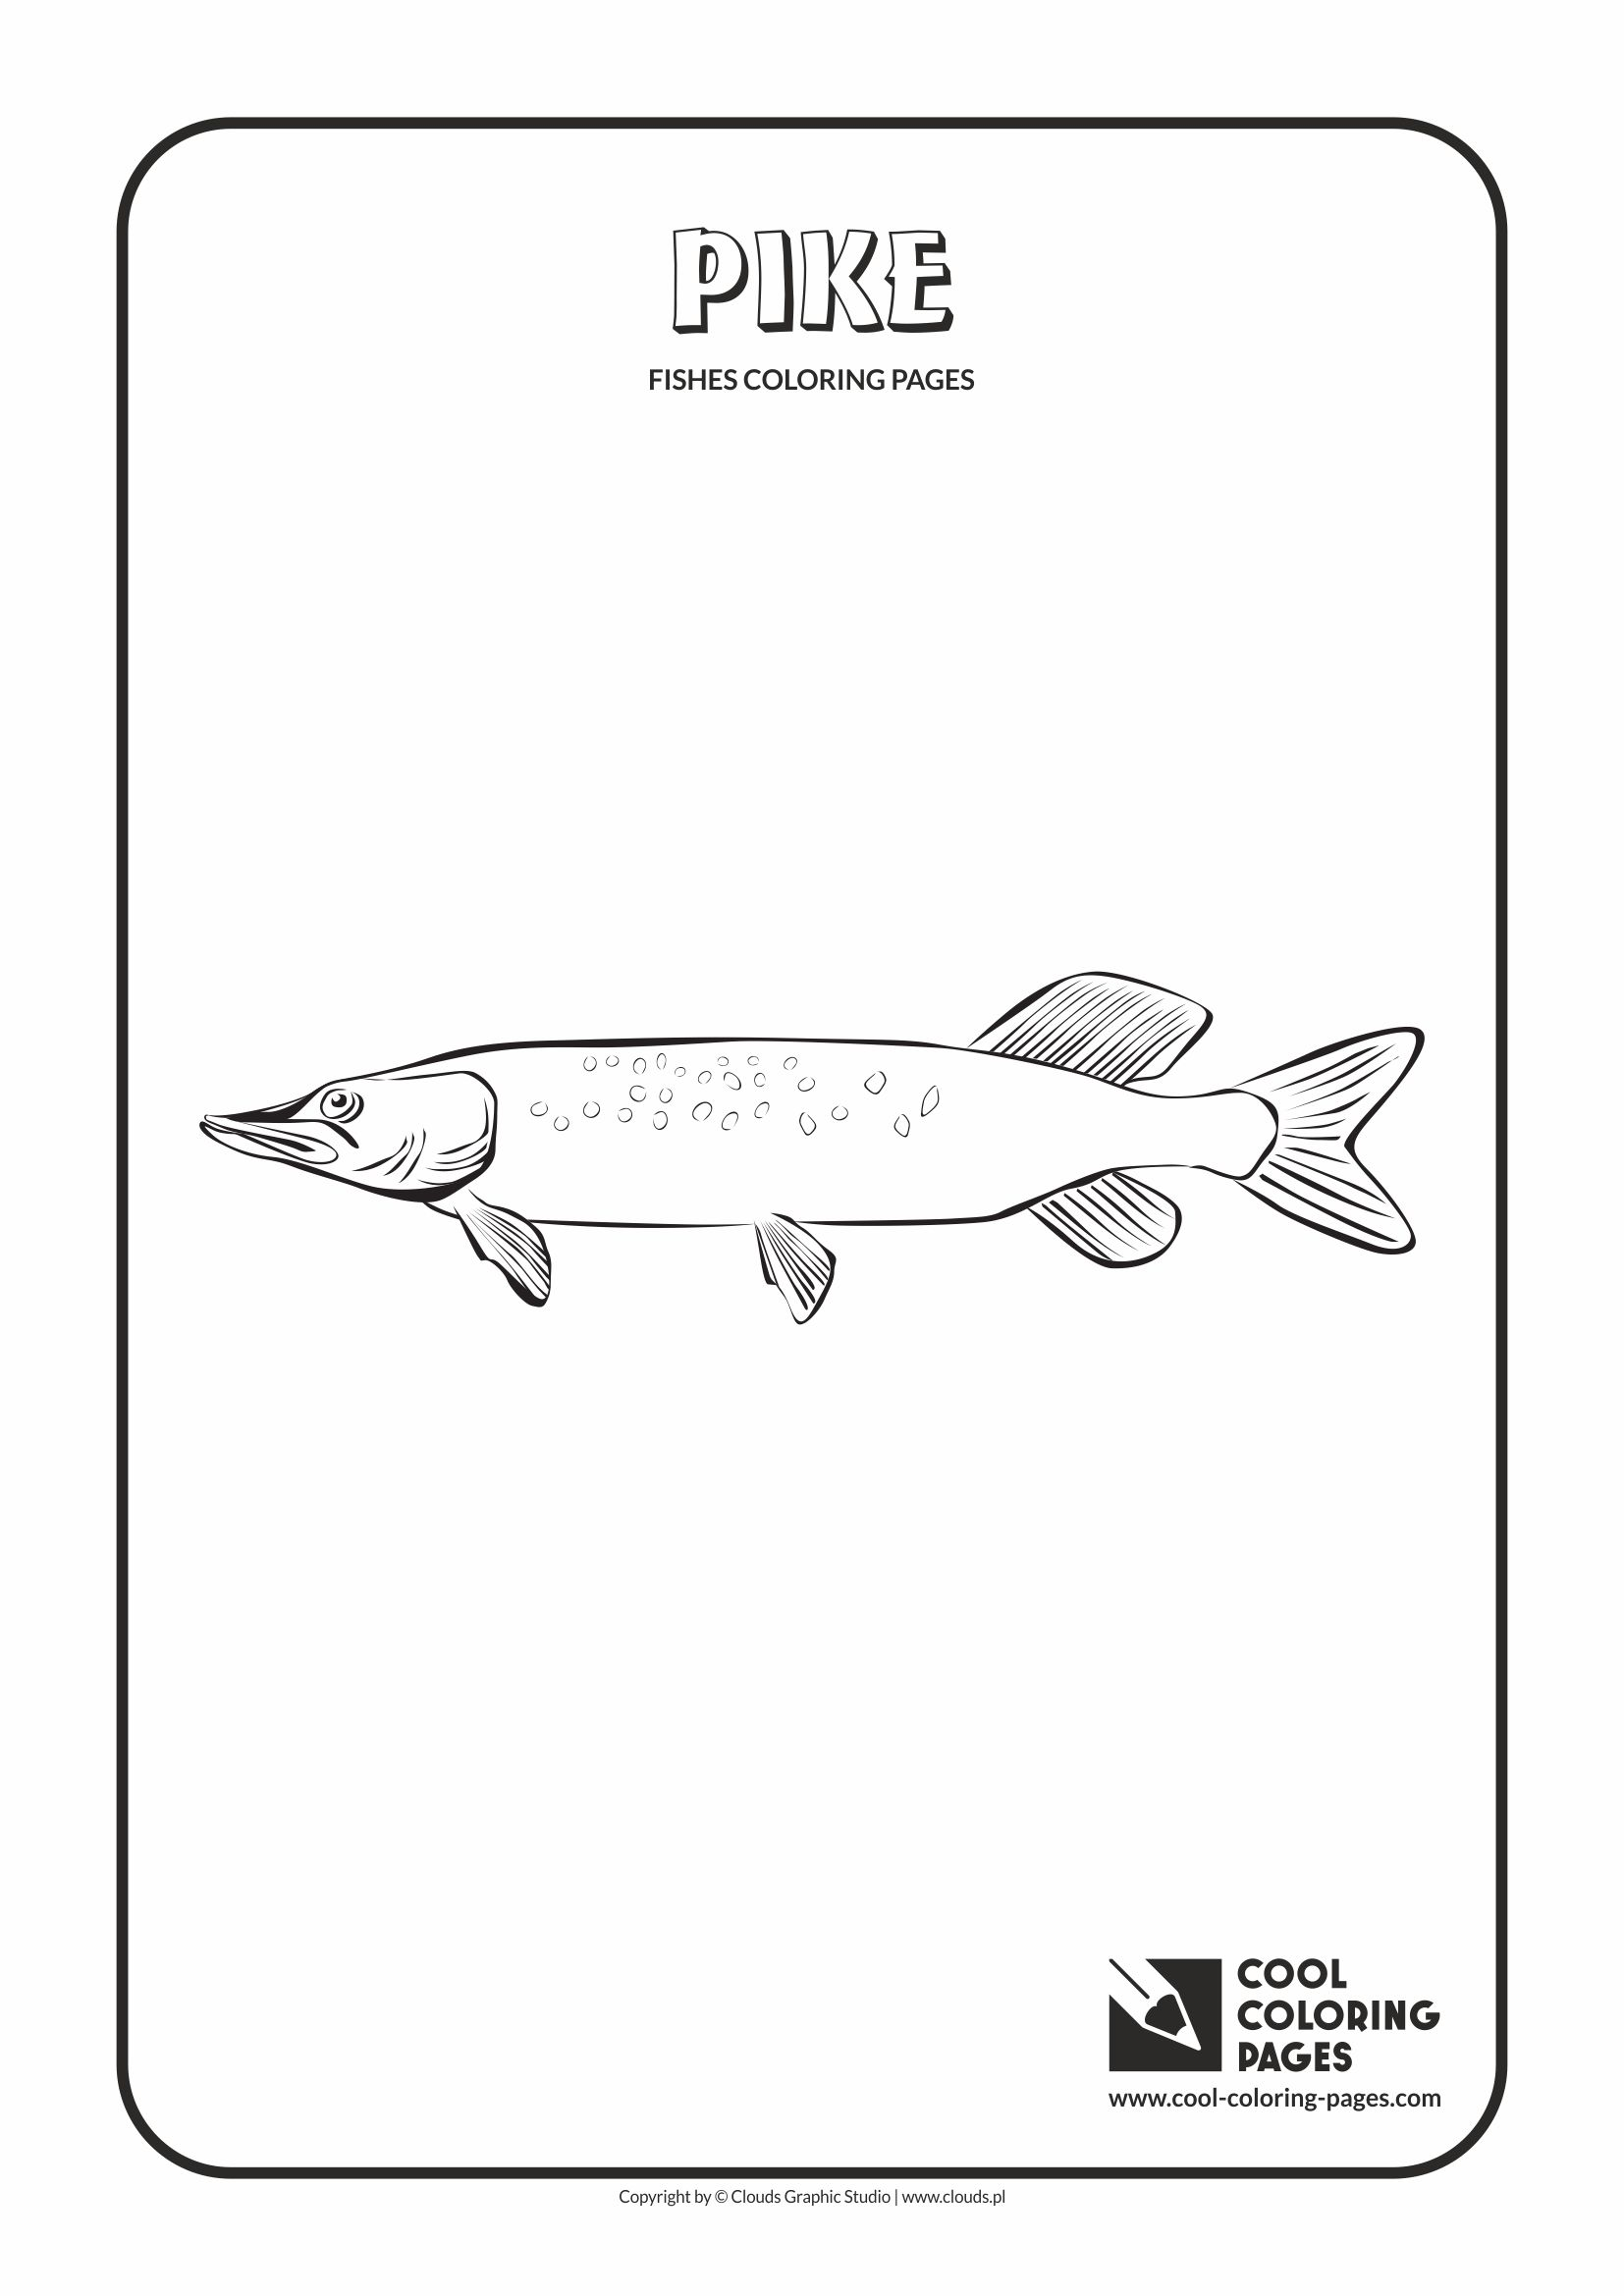 Cool Coloring Pages   Animals / Pike / Coloring Page With Pike